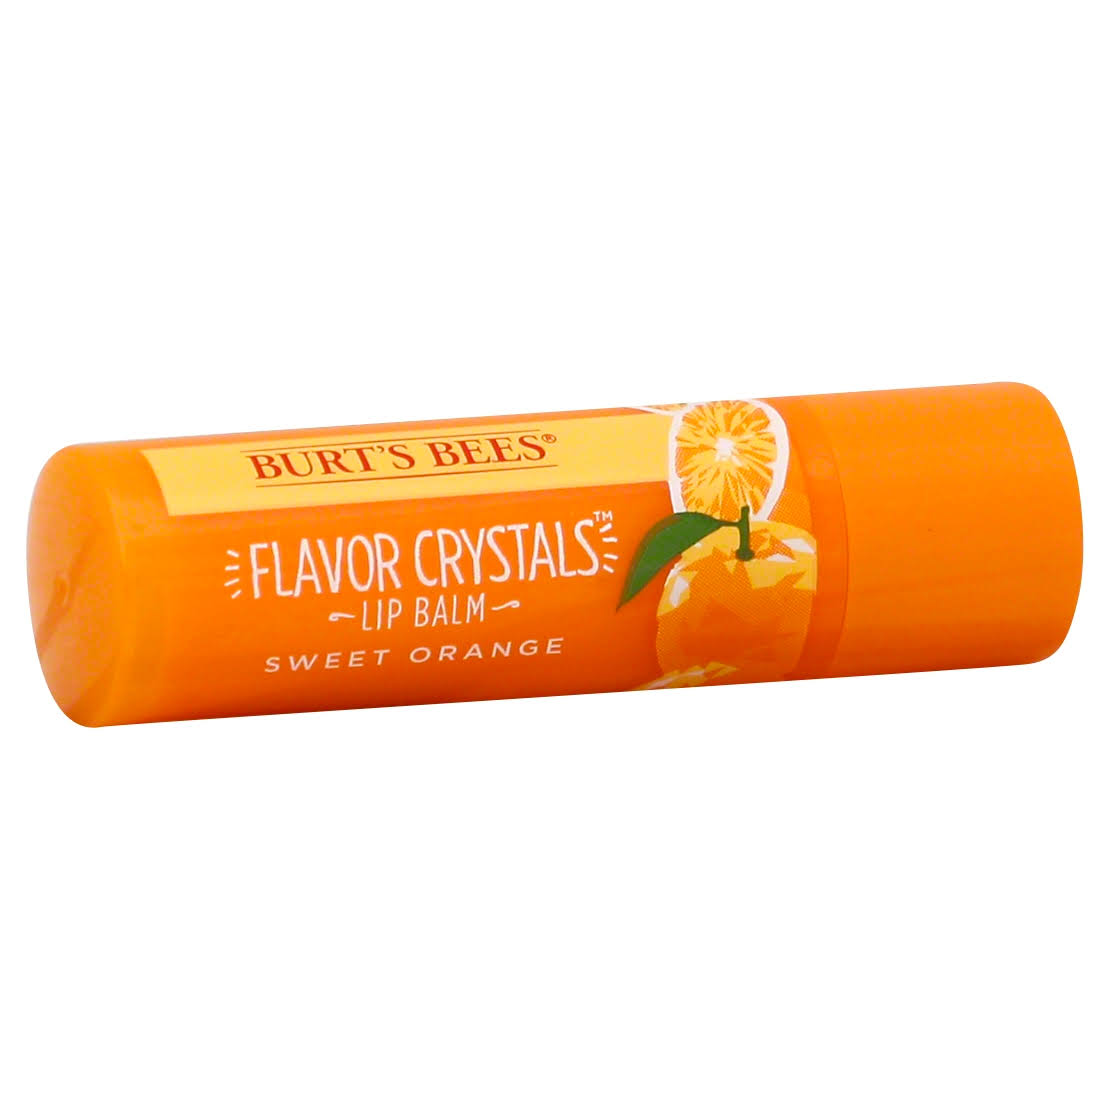 Burts Bees Flavor Crystals Lip Balm, Sweet Orange - 0.16 oz